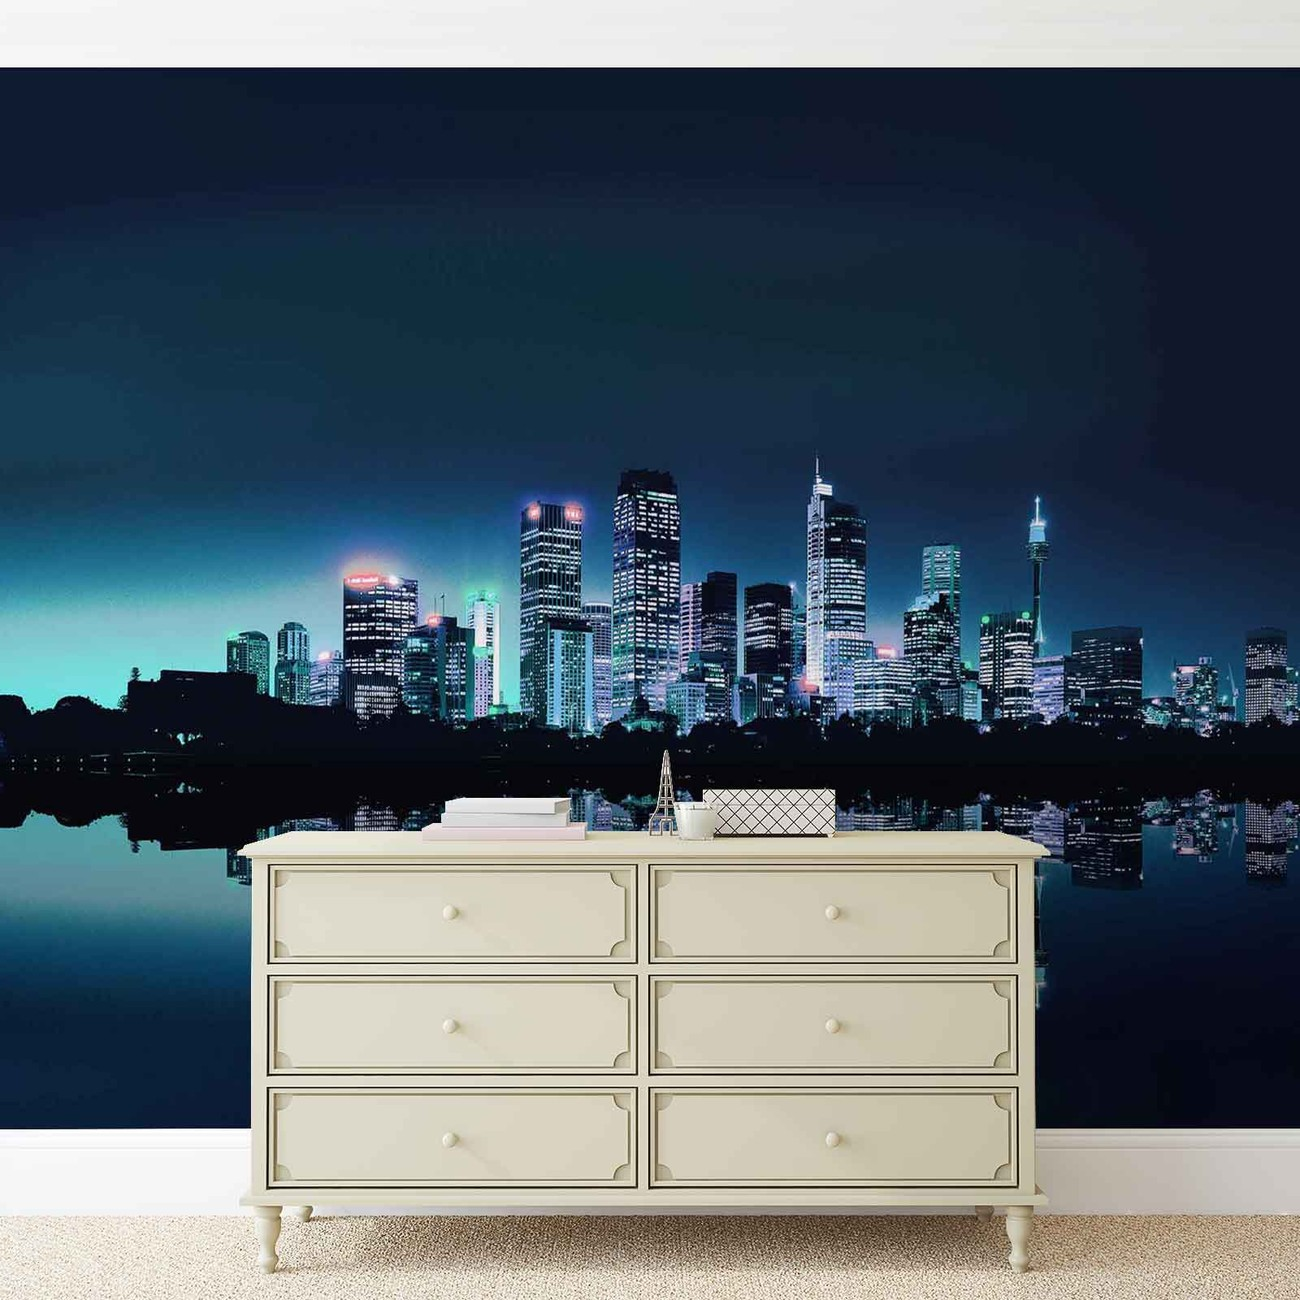 City skyline wall paper mural buy at europosters for Cityscape wall mural